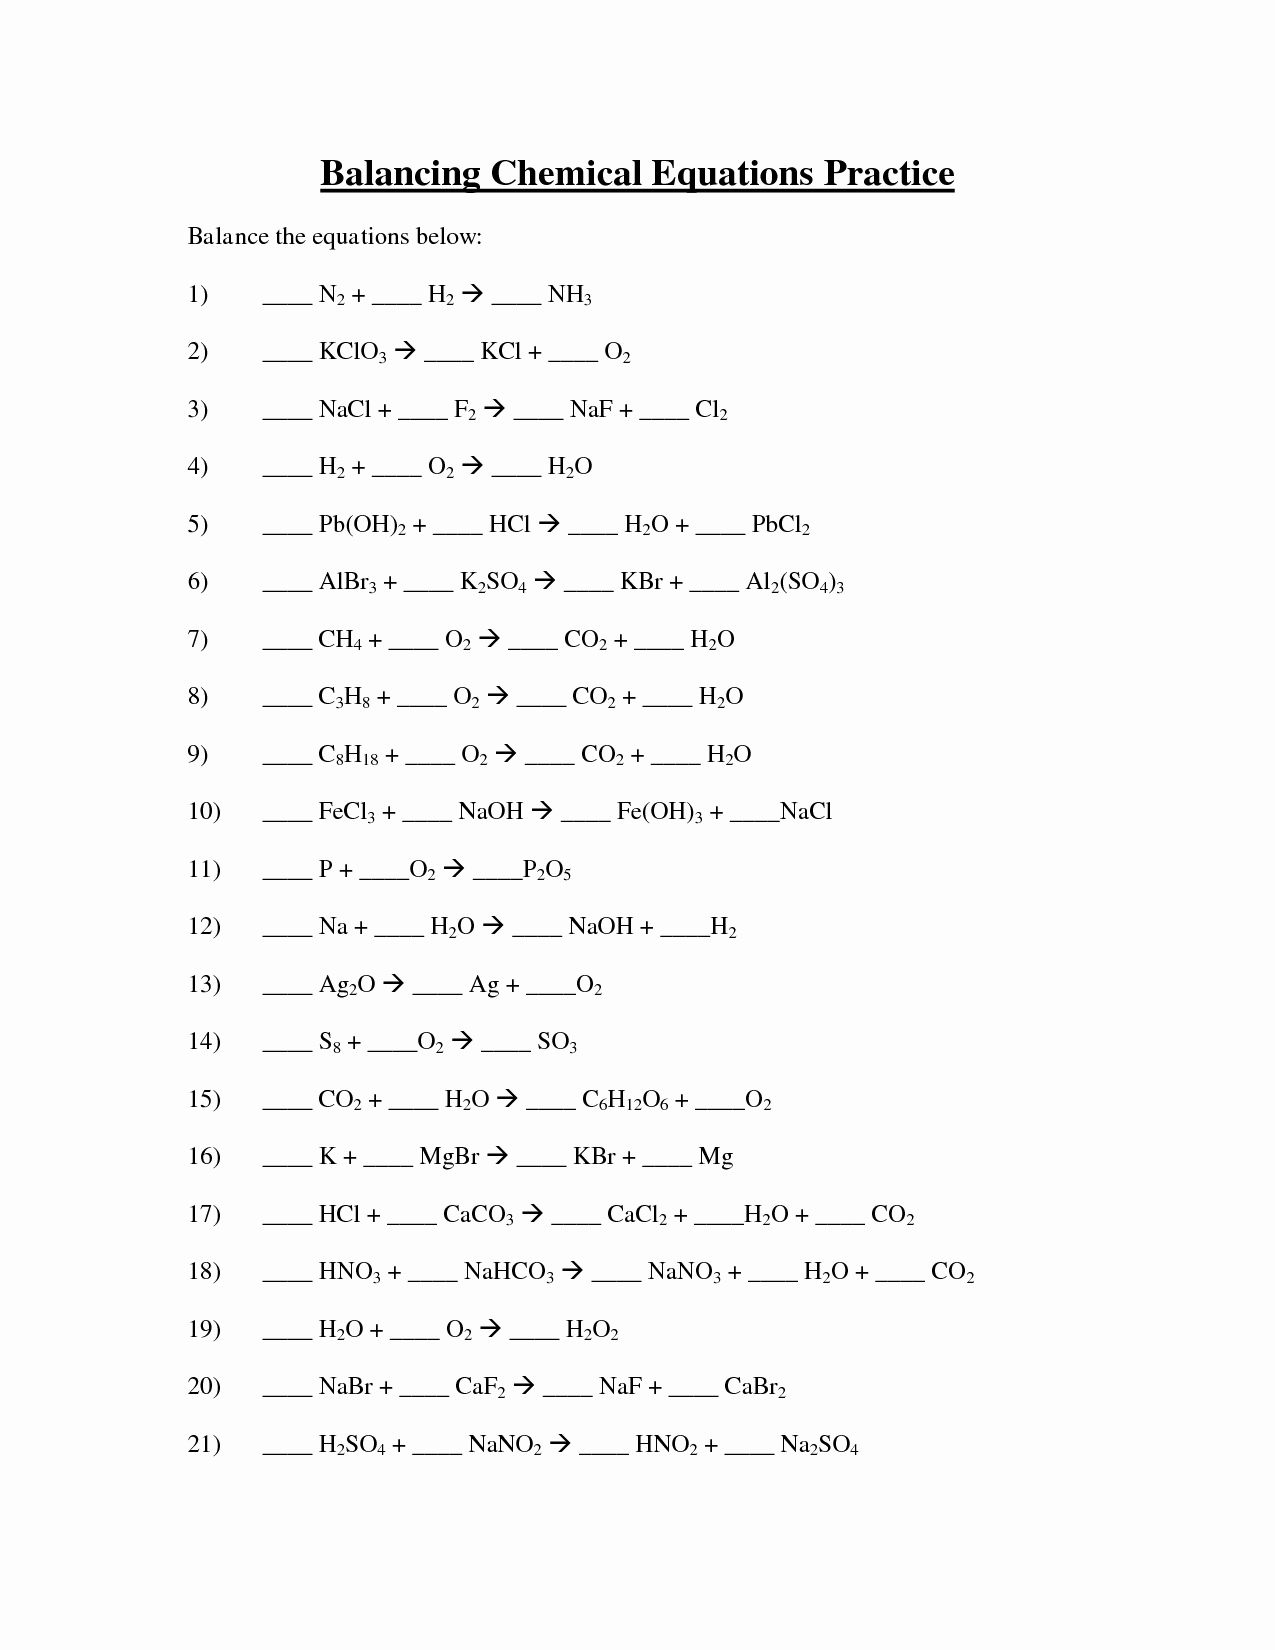 Balancing Chemical Equations Worksheet Answers 1 25